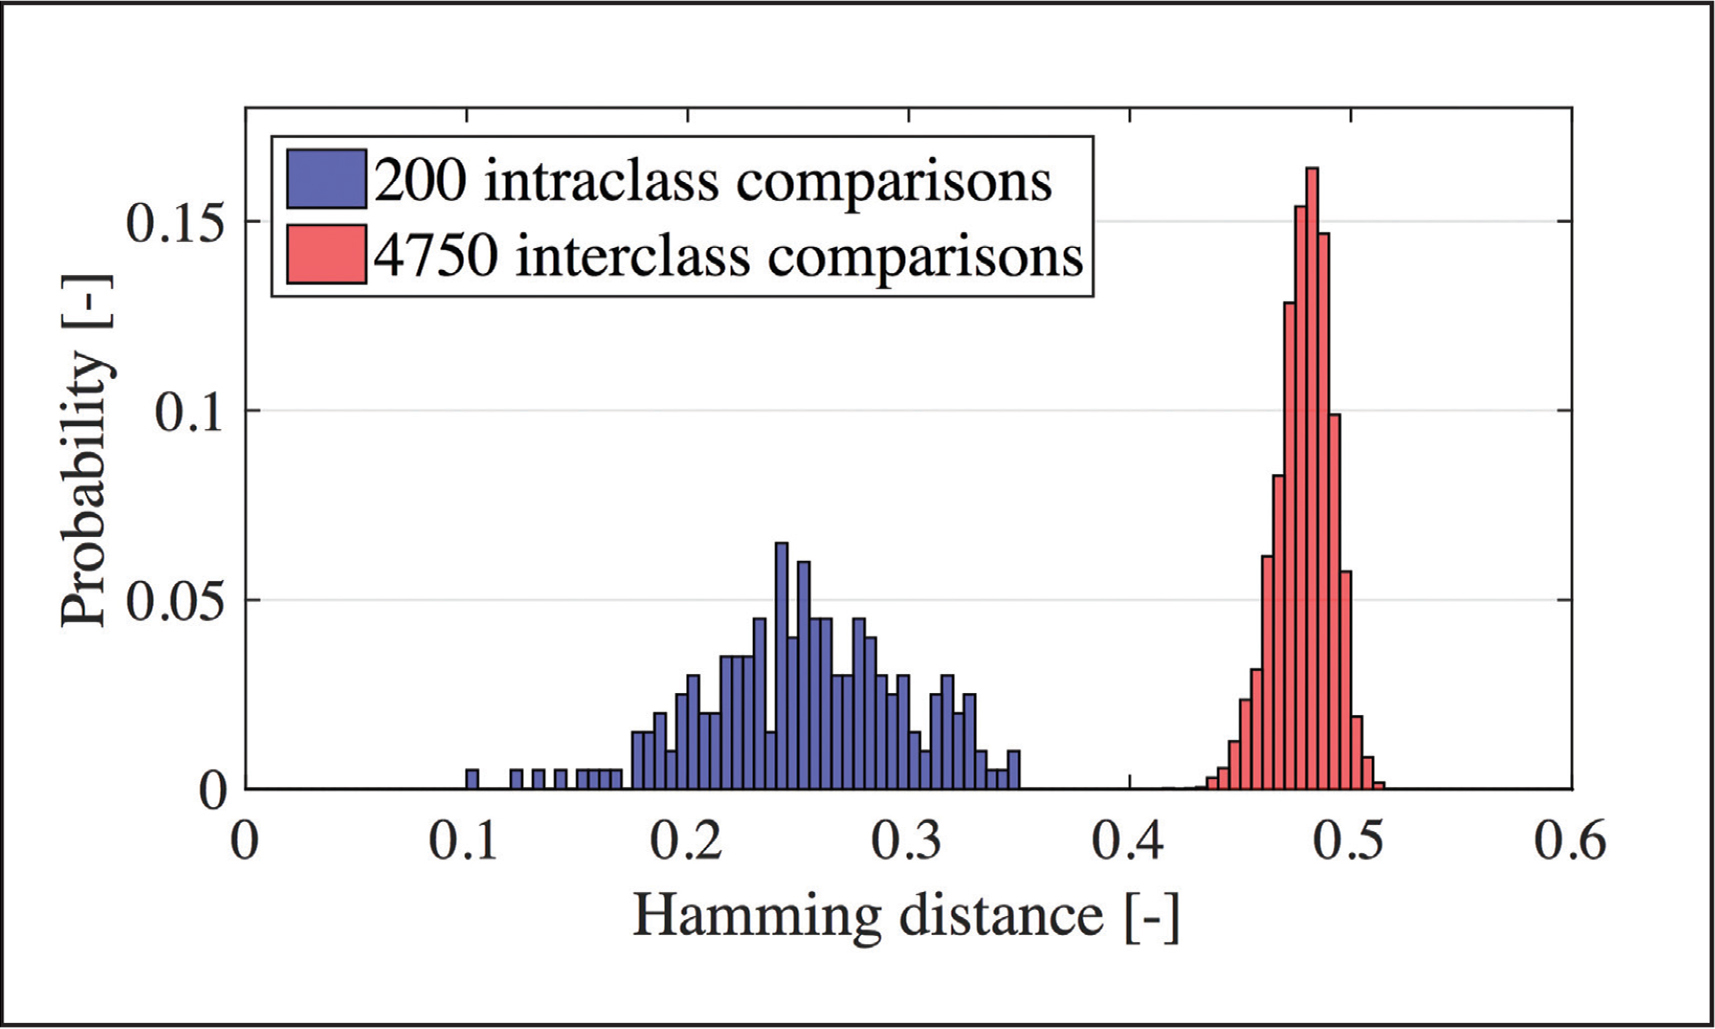 Hamming distance distribution of as calculated from 100 images of 20 eyes (five images of each eye). Defining the threshold at 0.4, correct recognition can be achieved for all images.